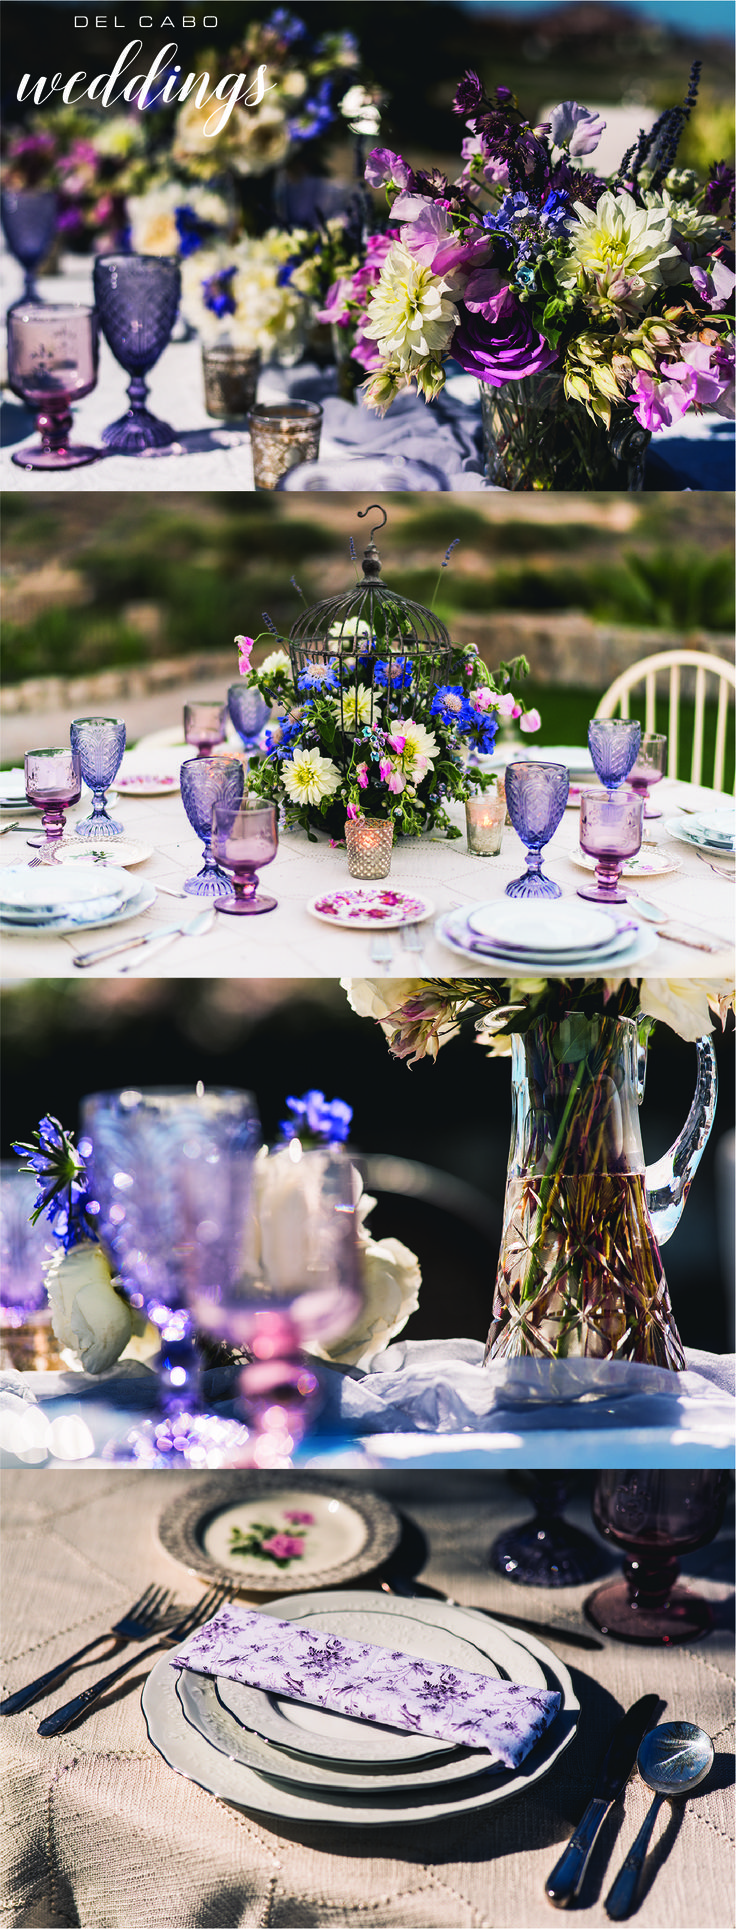 Transport yourself to another time with these shabby chic wedding ideas!